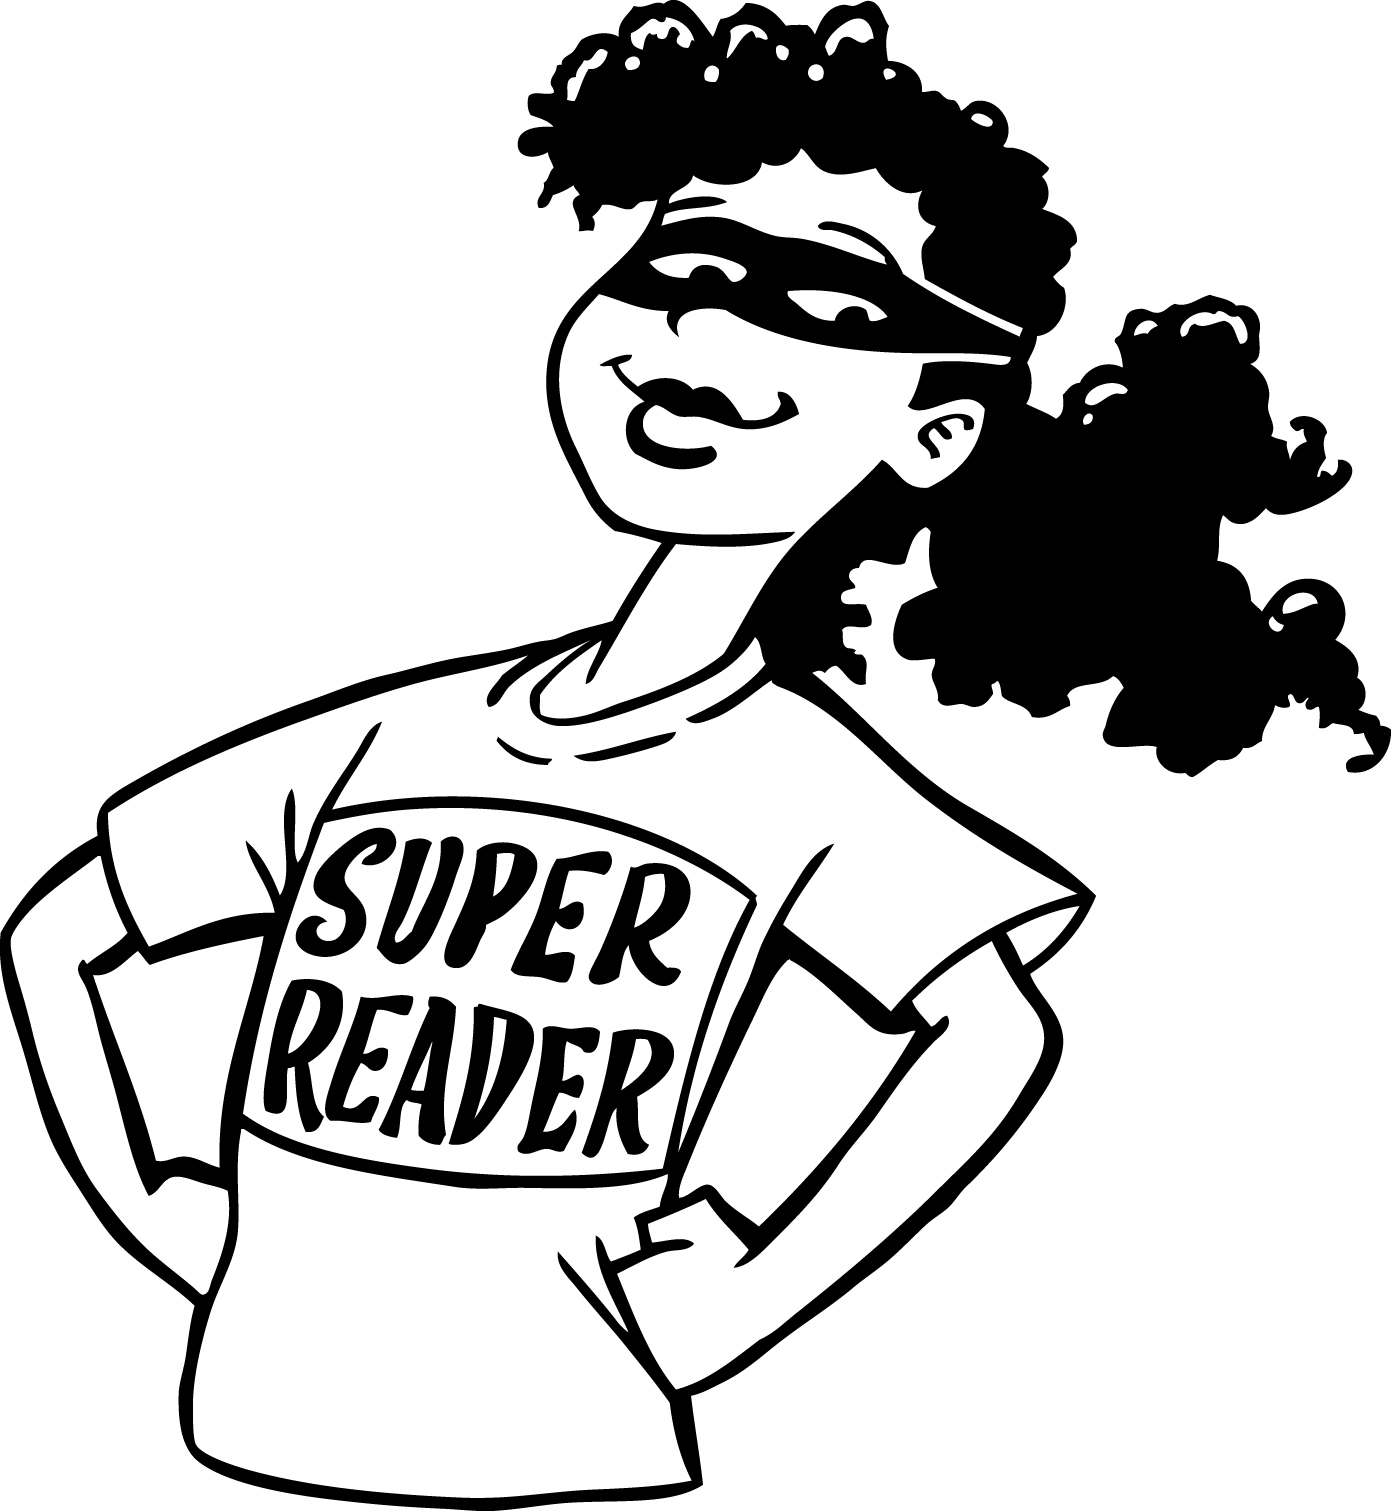 Super 20reader 20girl 20copy